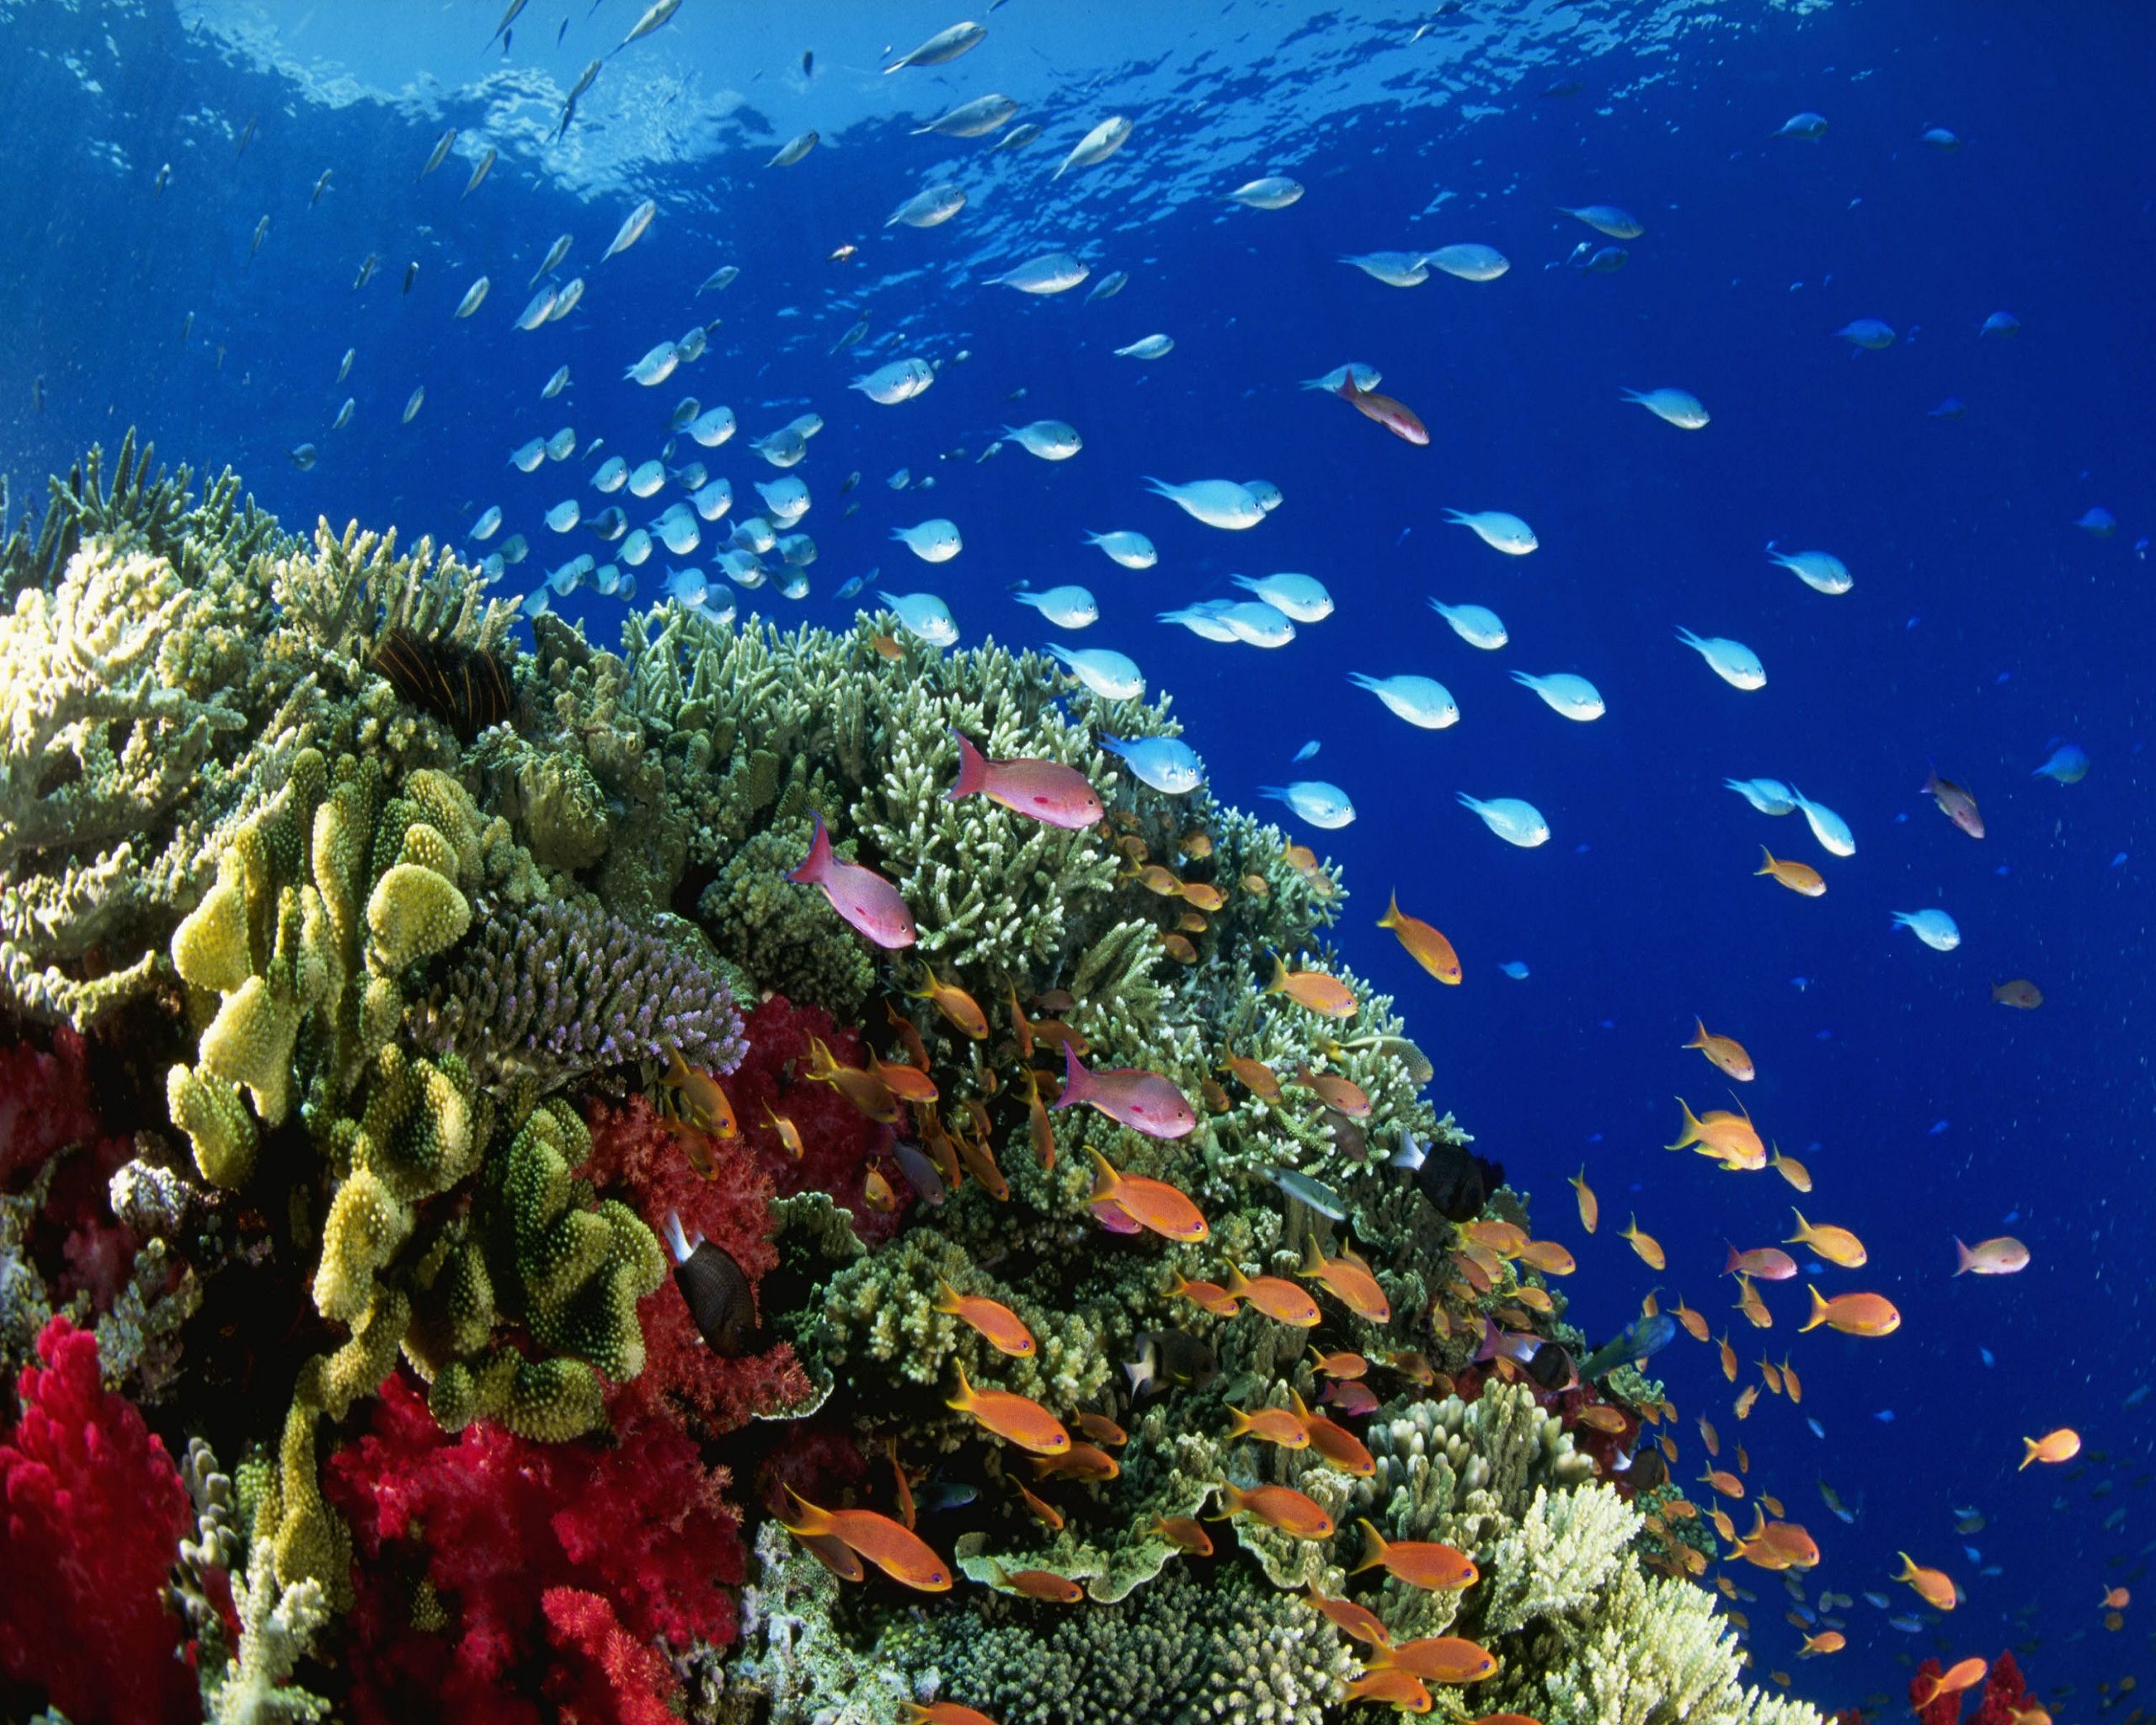 Marine Life at Great Barrier Reef